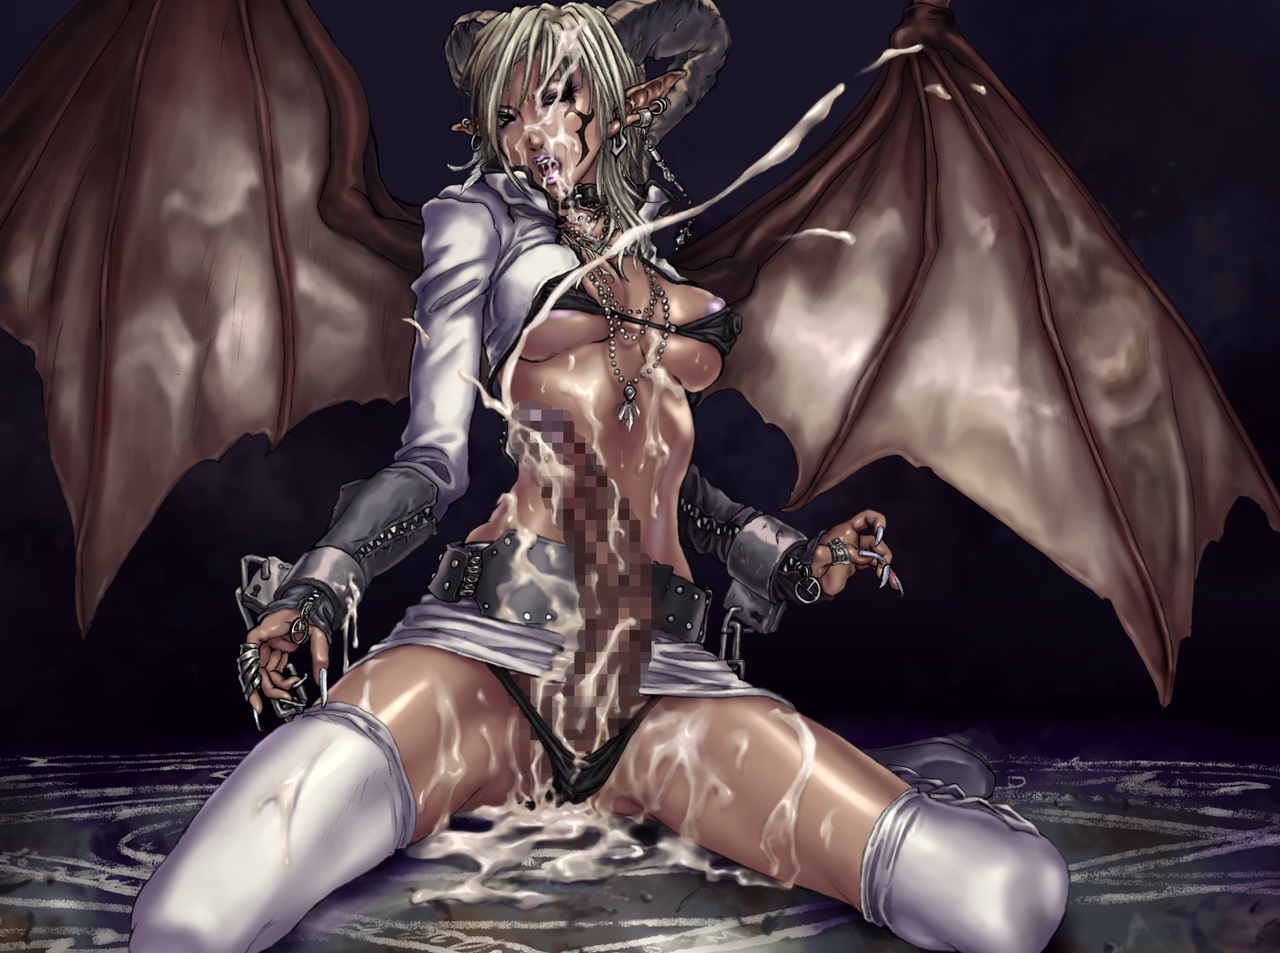 Hentai demon wallpaper sex movie